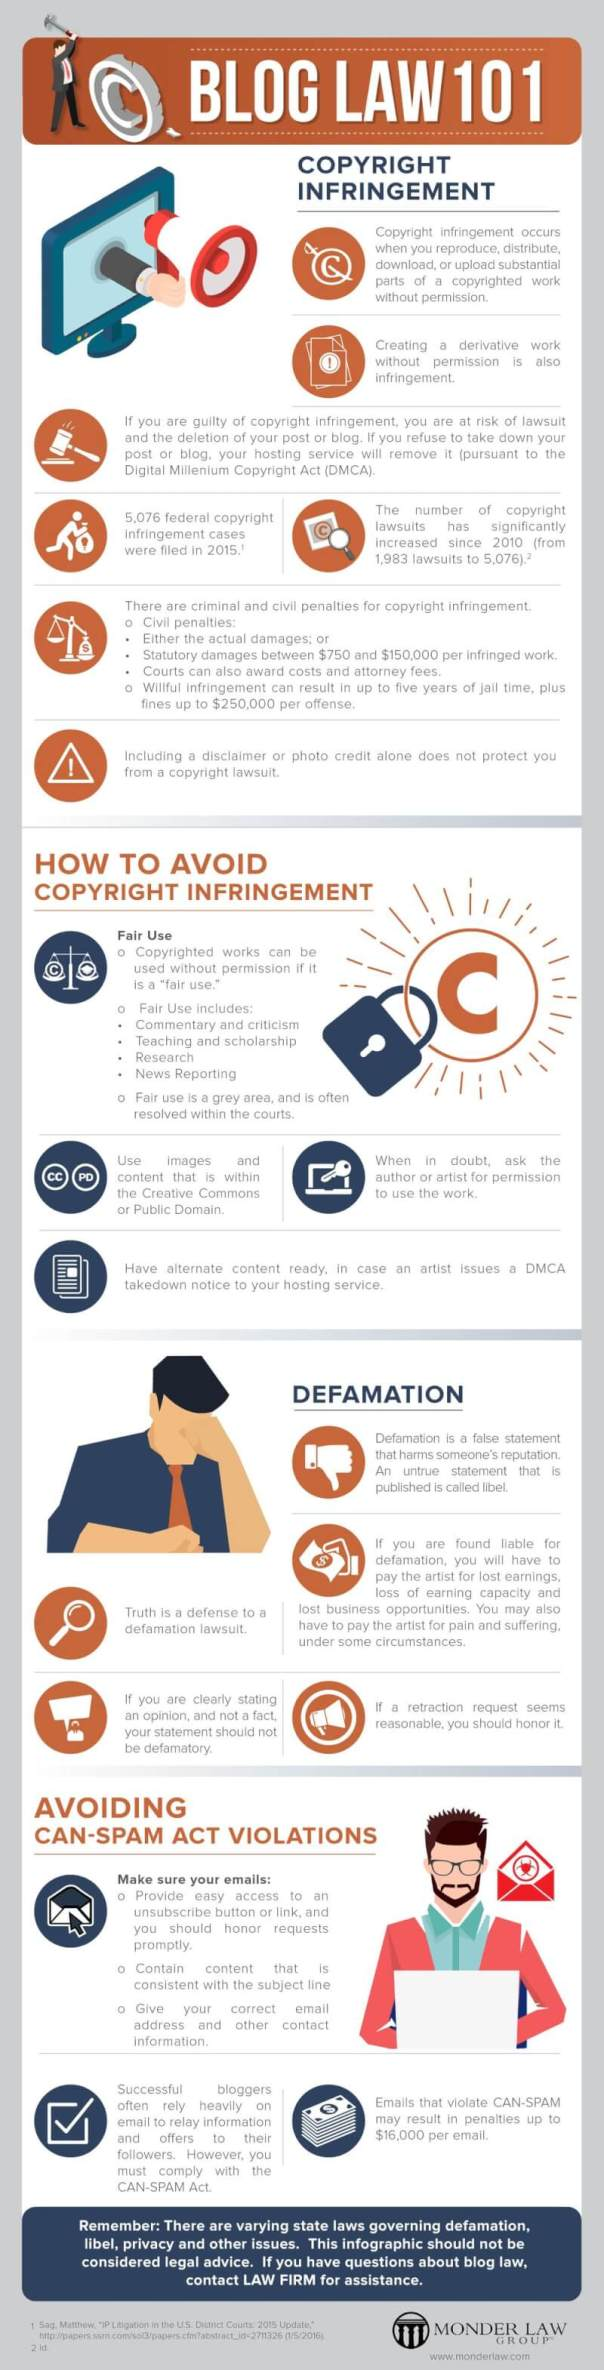 Blog-law-101-infographic